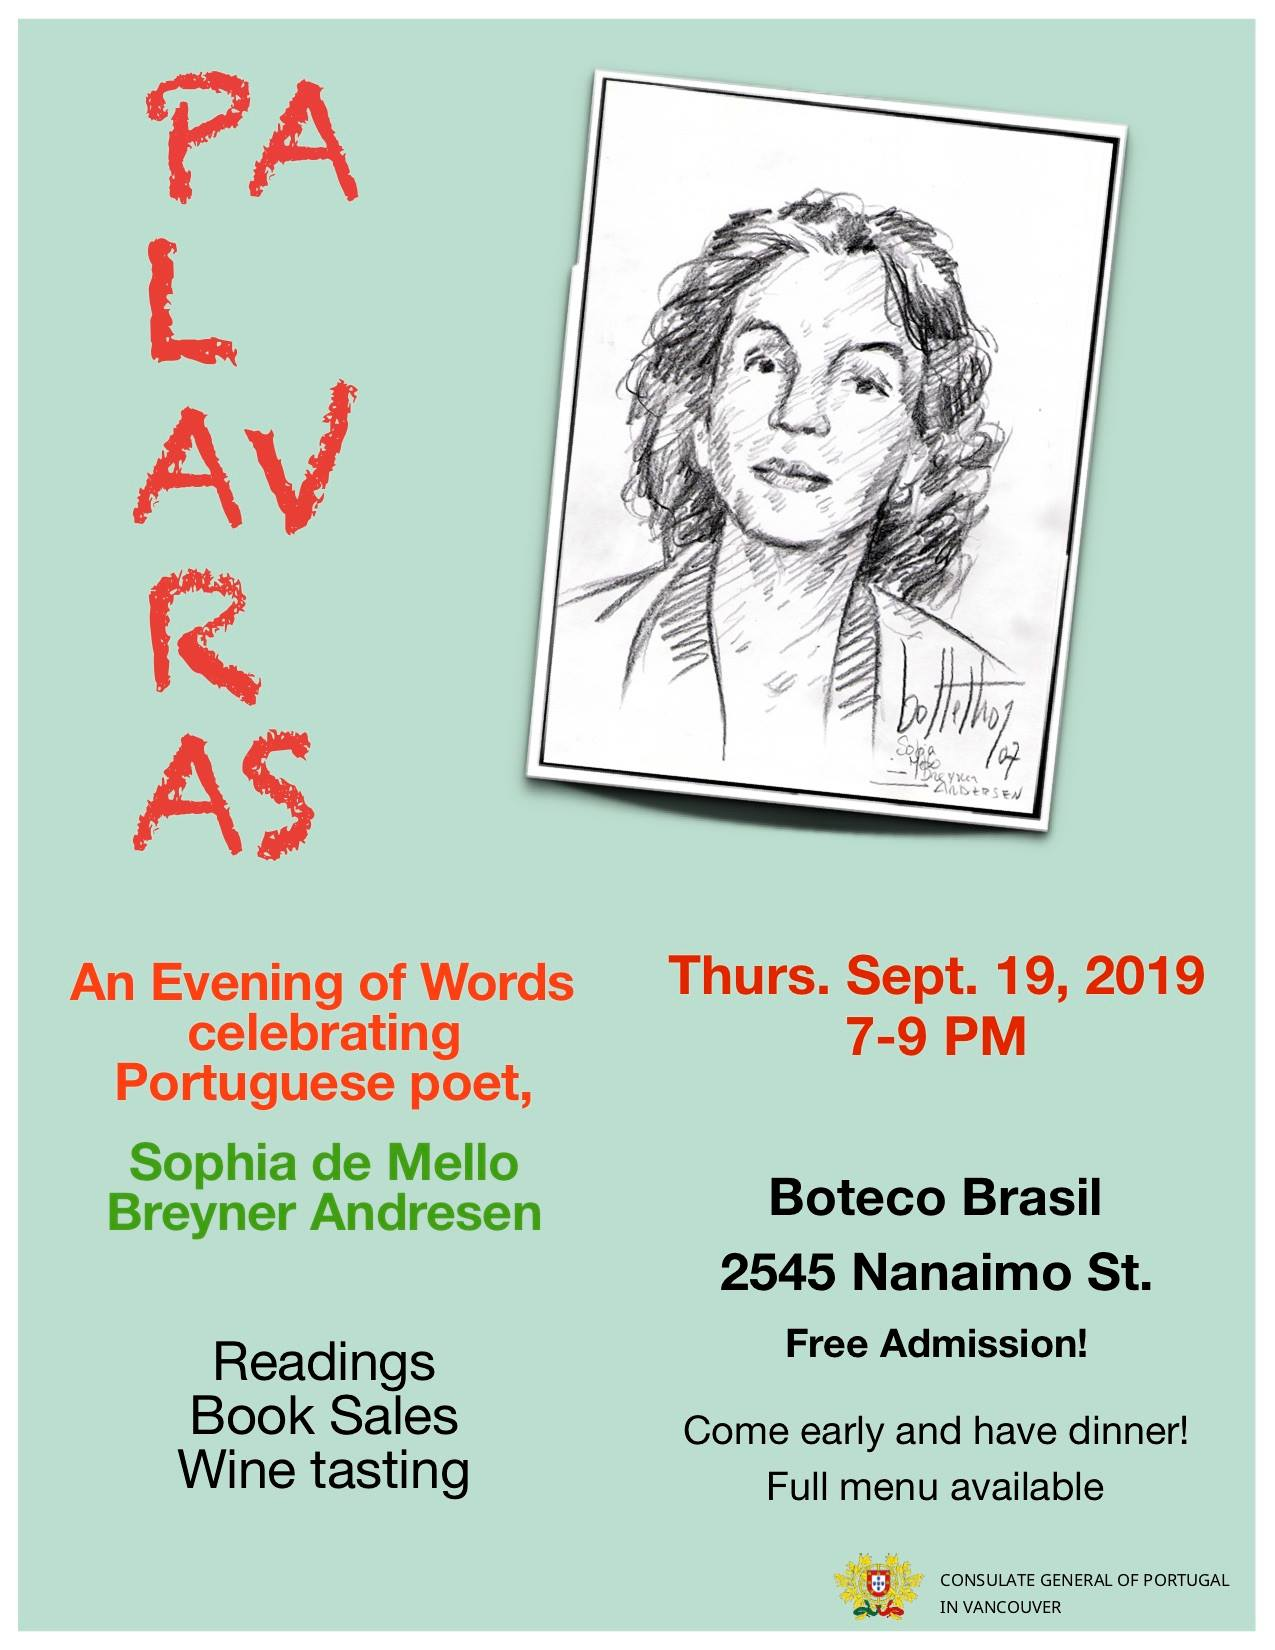 Palavras: An Evening of Words